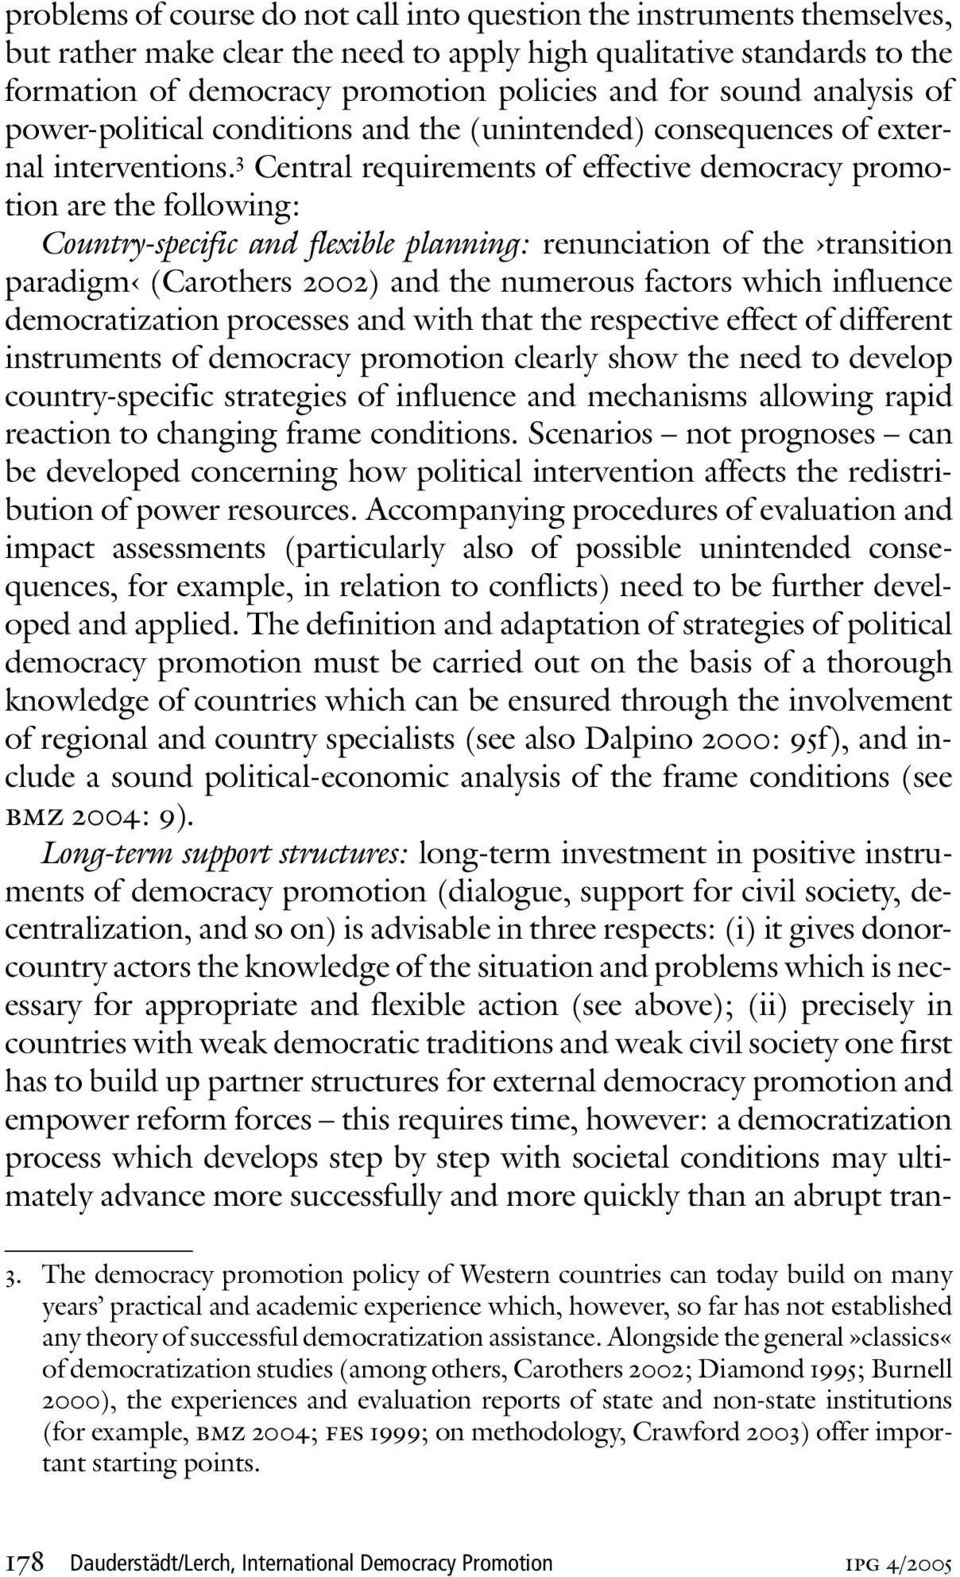 3 Central requirements of effective democracy promotion are the following: Country-specific and flexible planning: renunciation of the transition paradigm (Carothers 2002) and the numerous factors